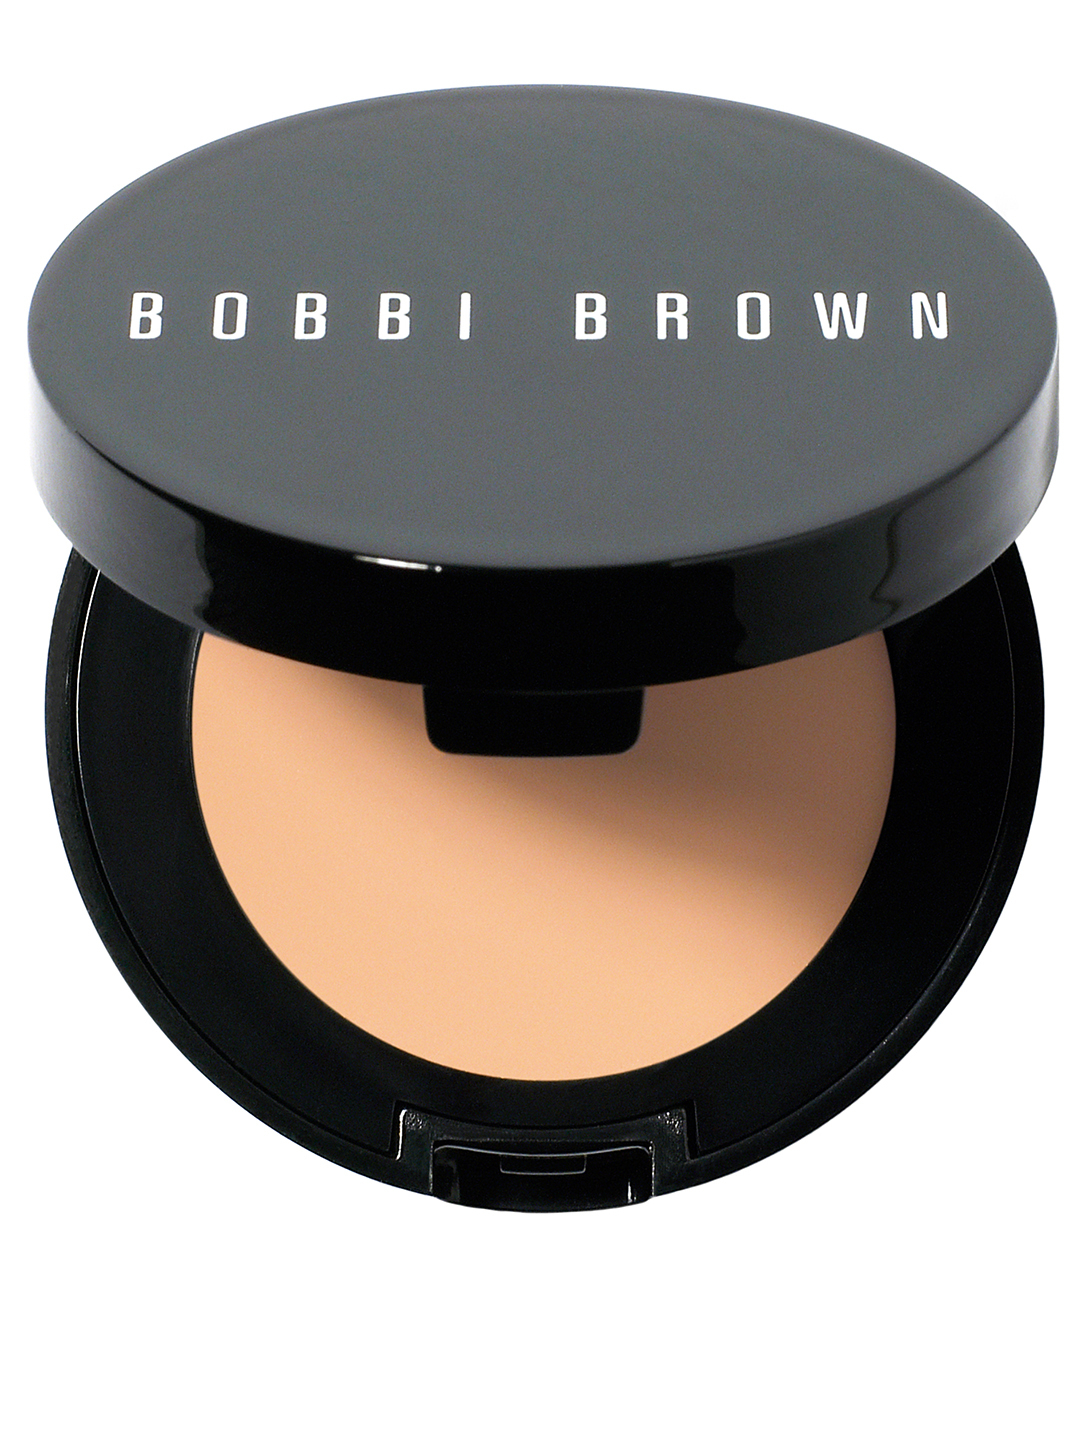 BOBBI BROWN Creamy Concealer Beauty Neutral